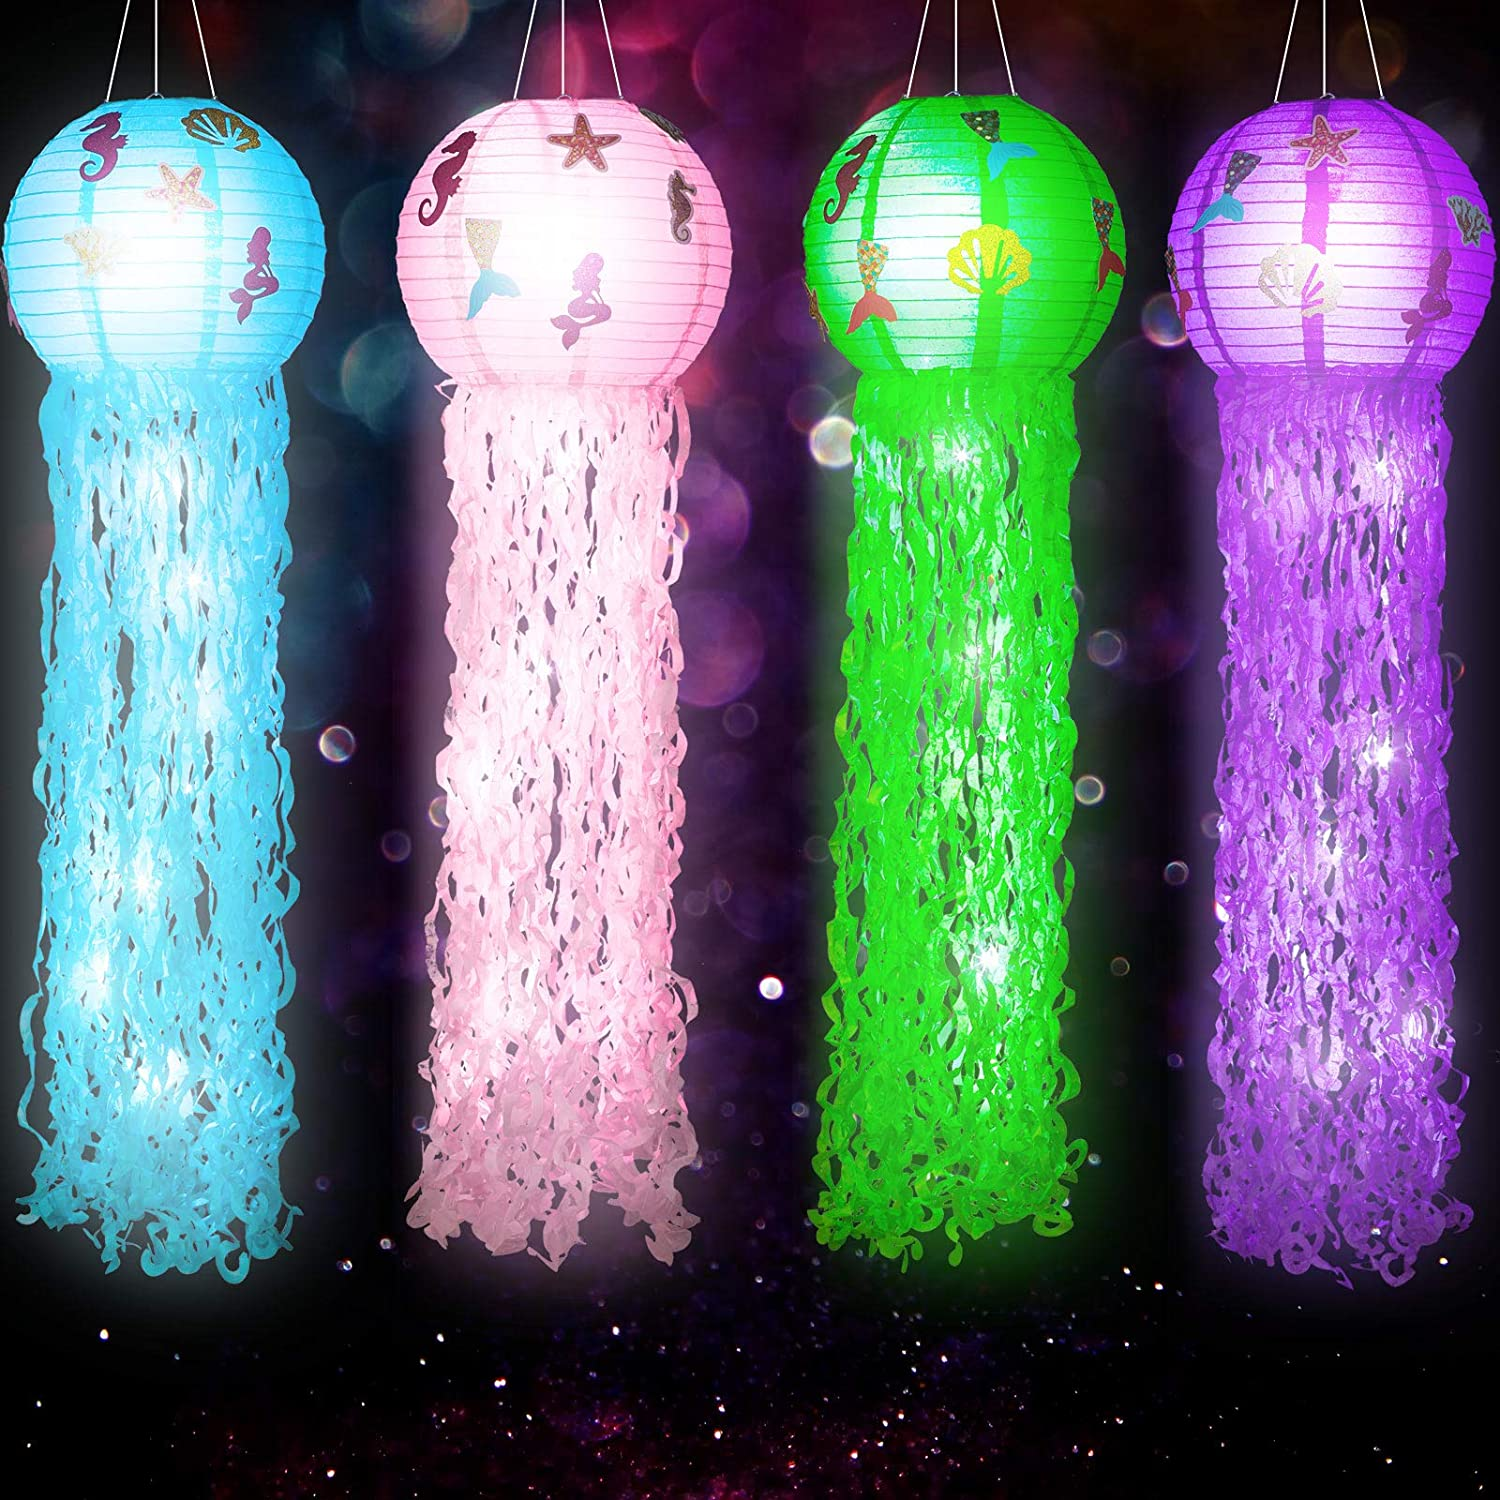 4 Pieces Jelly Fish Paper Lanterns Kit with Mermaid Confetti and LED Lights, Cute Hanging Mermaid Wishes Lantern for Baby Shower Child Birthday Party Decoration, Indoor or Outdoor Event Party Supplies